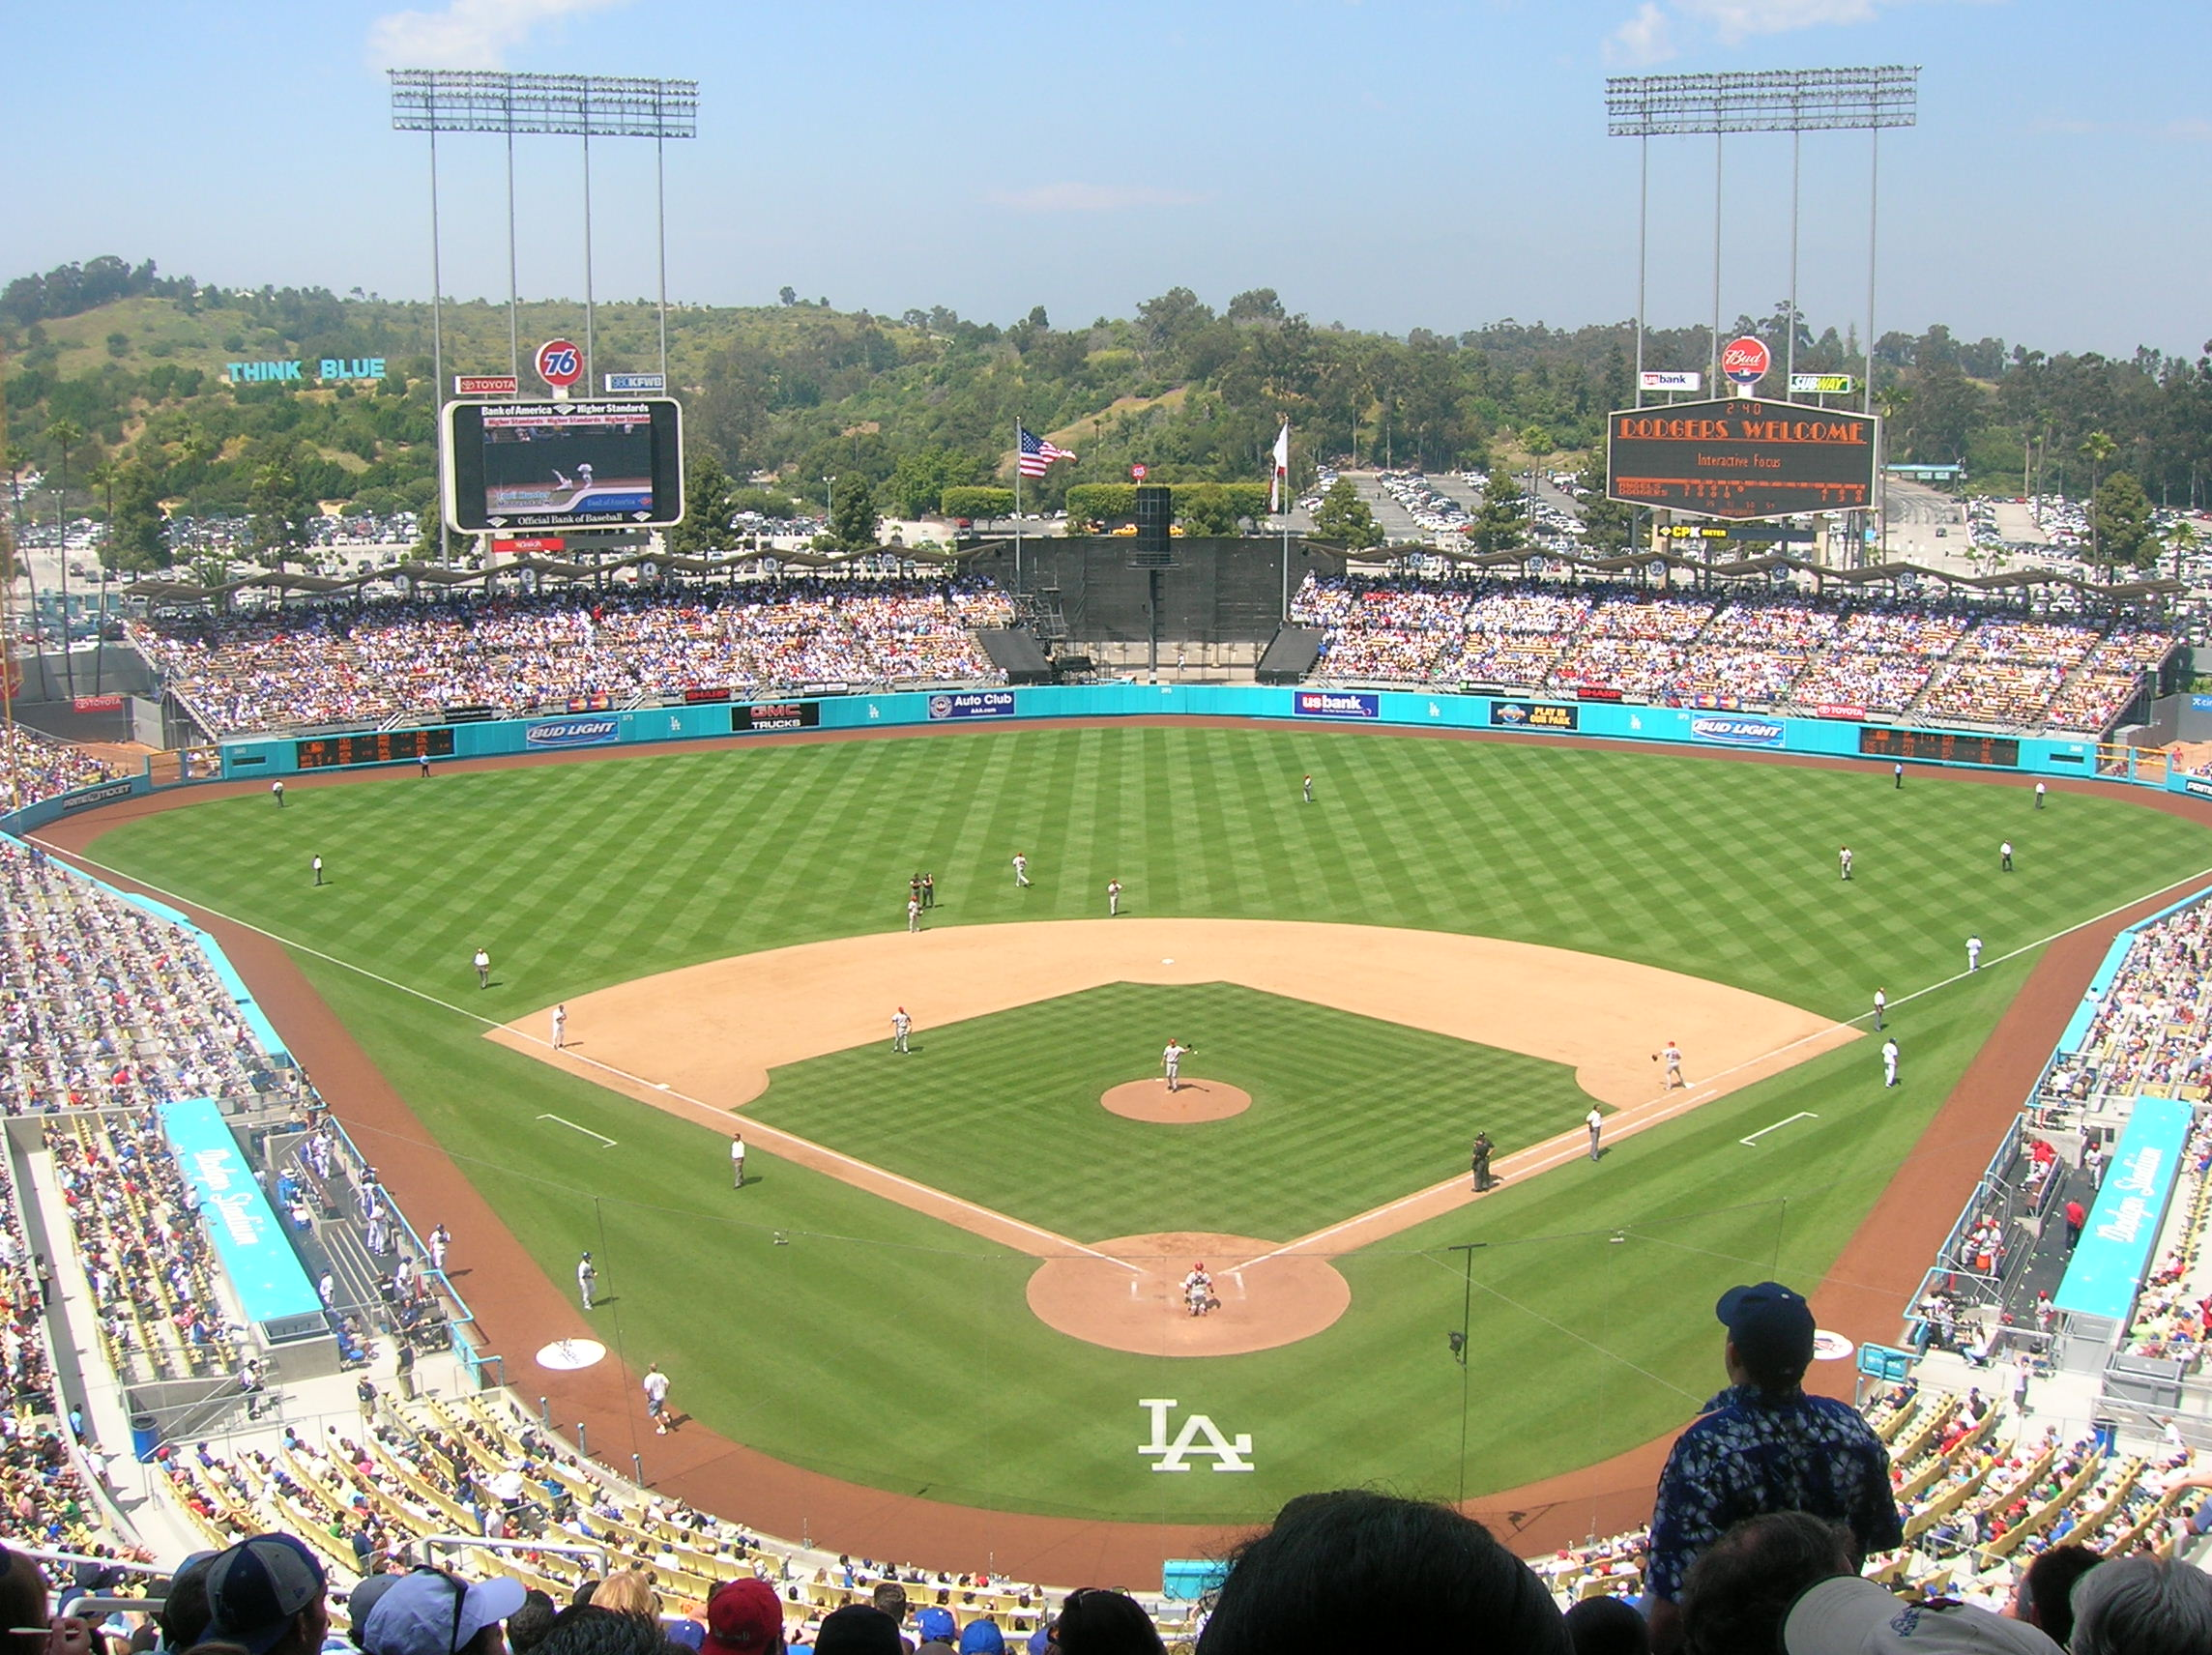 By Frederick Dennstedt from los angeles, usa (Dodger Stadium) [CC BY-SA 2.0 (http://creativecommons.org/licenses/by-sa/2.0)], via Wikimedia Commons